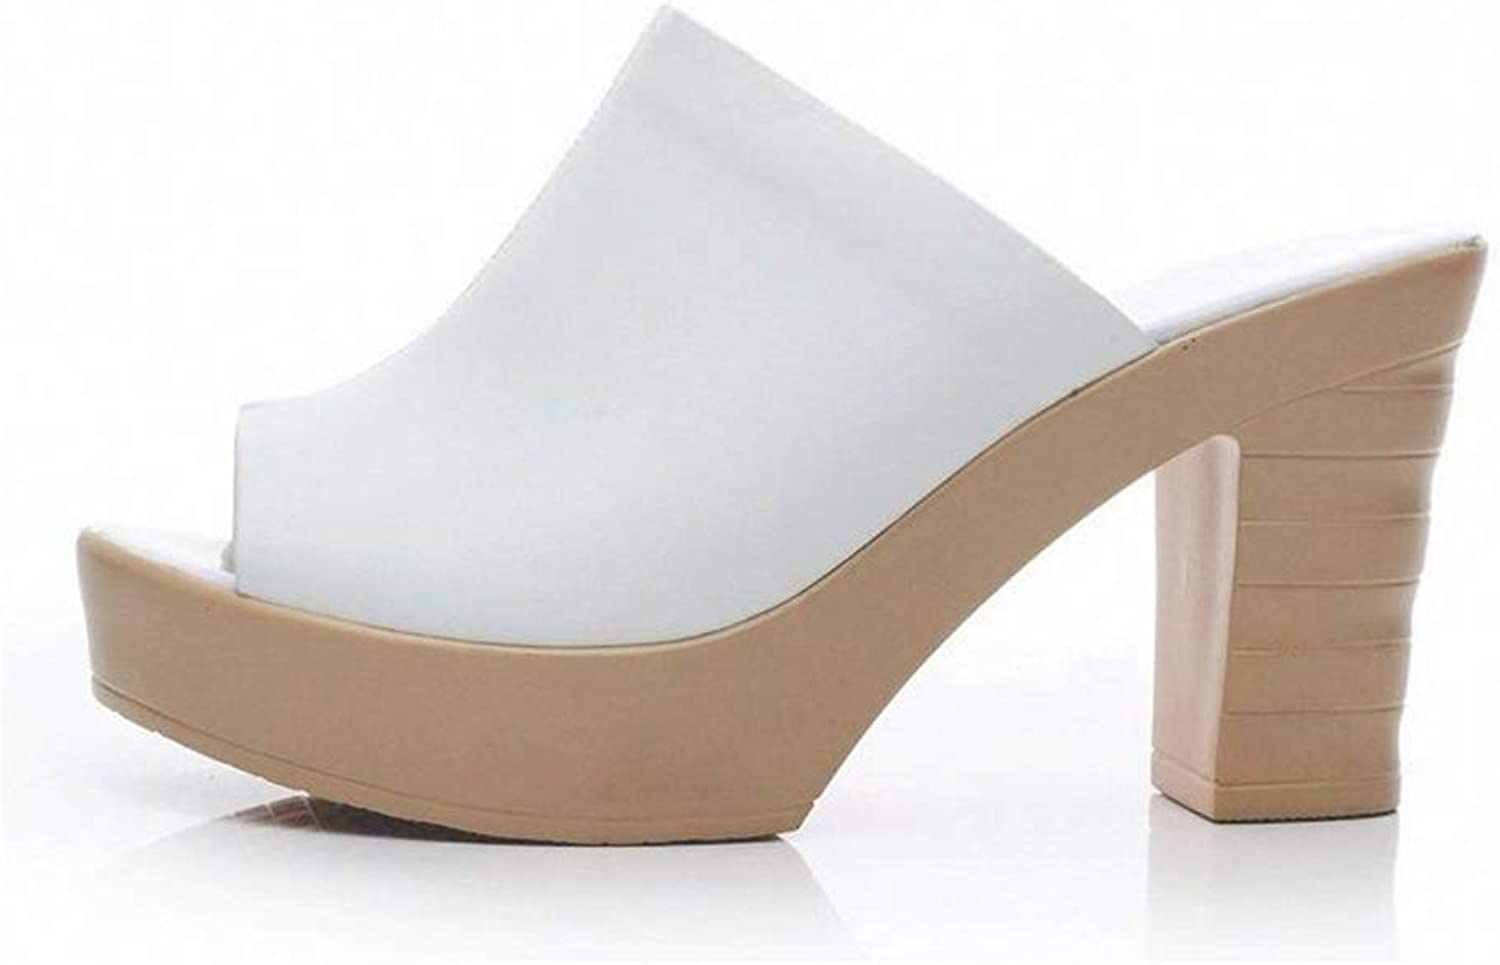 Hoxekle Woman's Peep Toe Platform High Chunky Heel Sandals Lady Sexy Casual Summer Clog Sole shoes